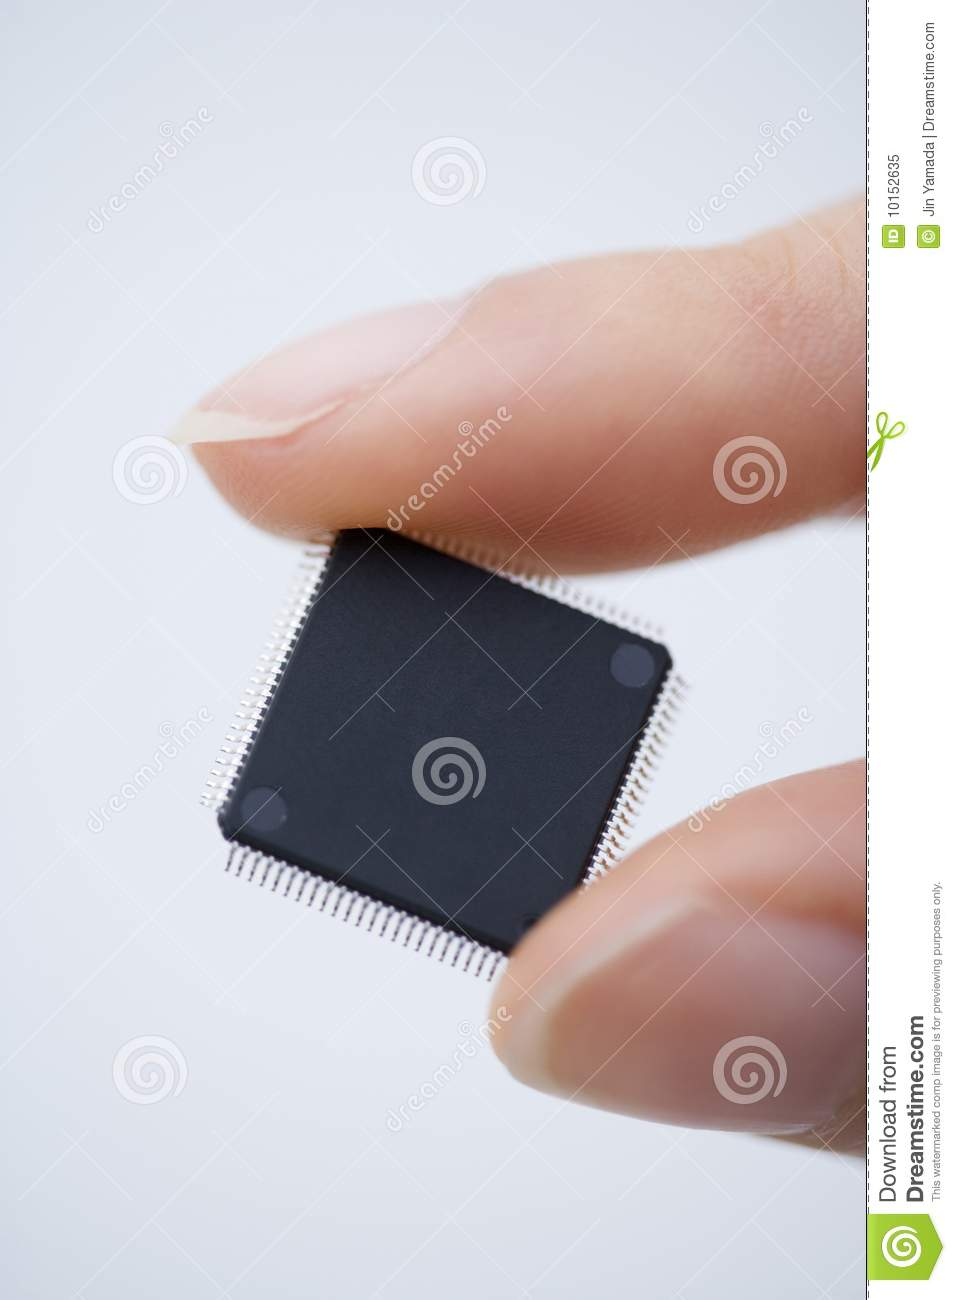 Computer Chip stock image  Image of finger, connection